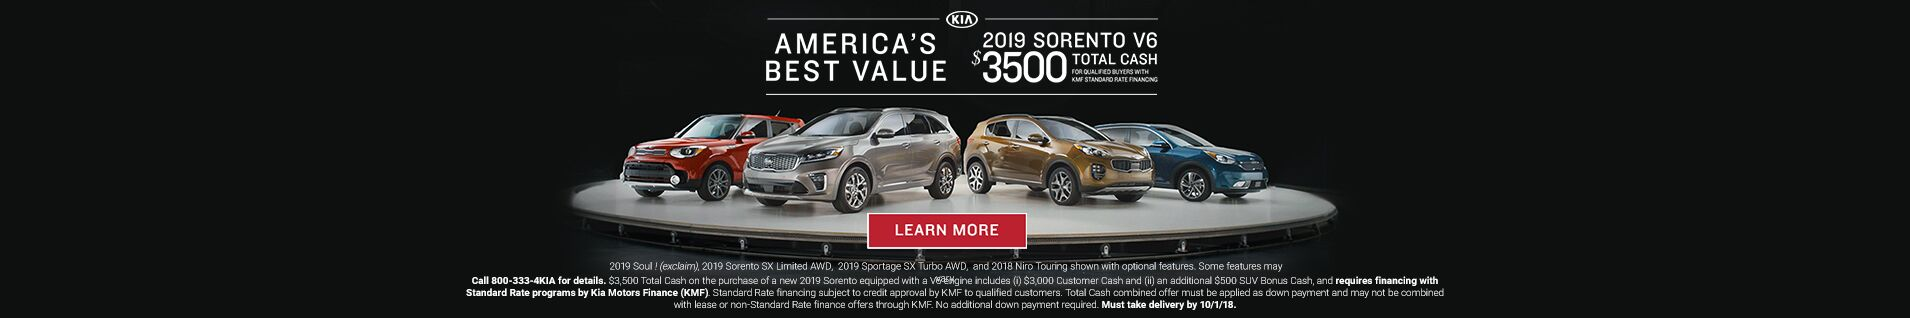 America's Best Value 2019 Sorento Palmen Kia